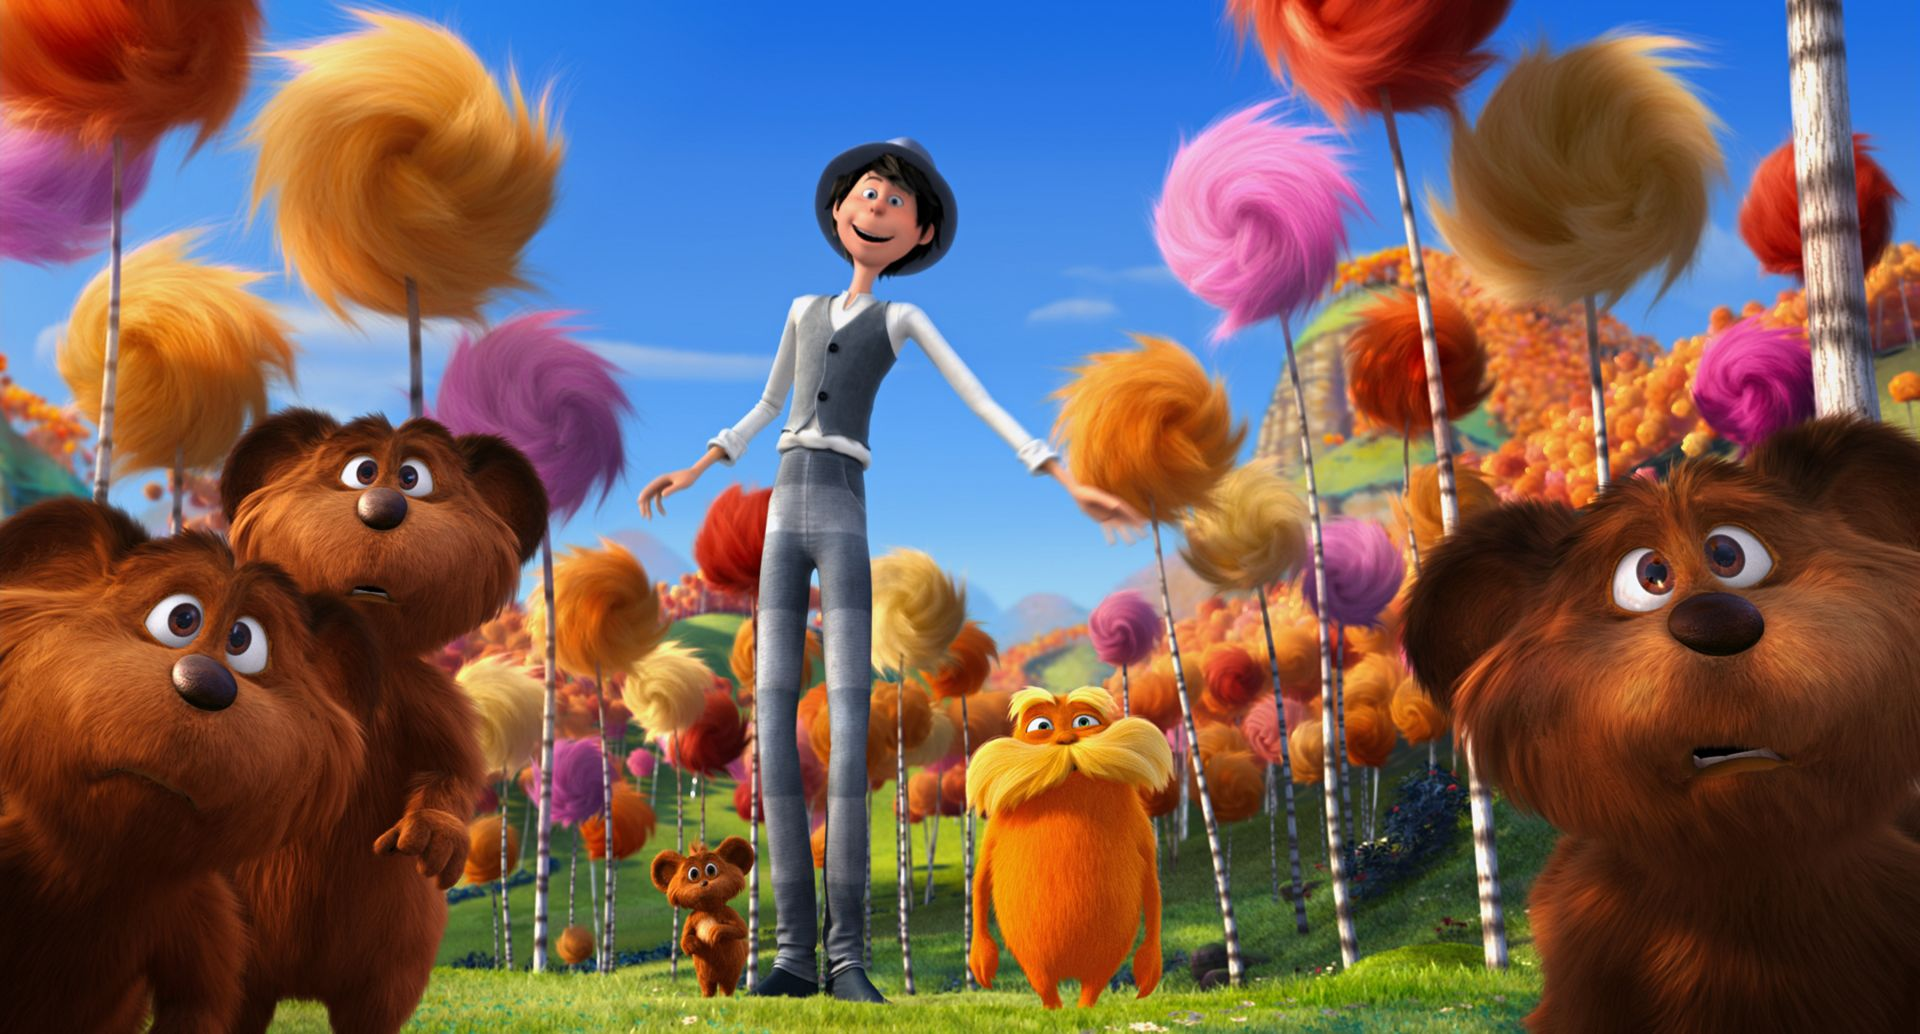 Lorax-Movie-the-once-ler-29846937-1920-1